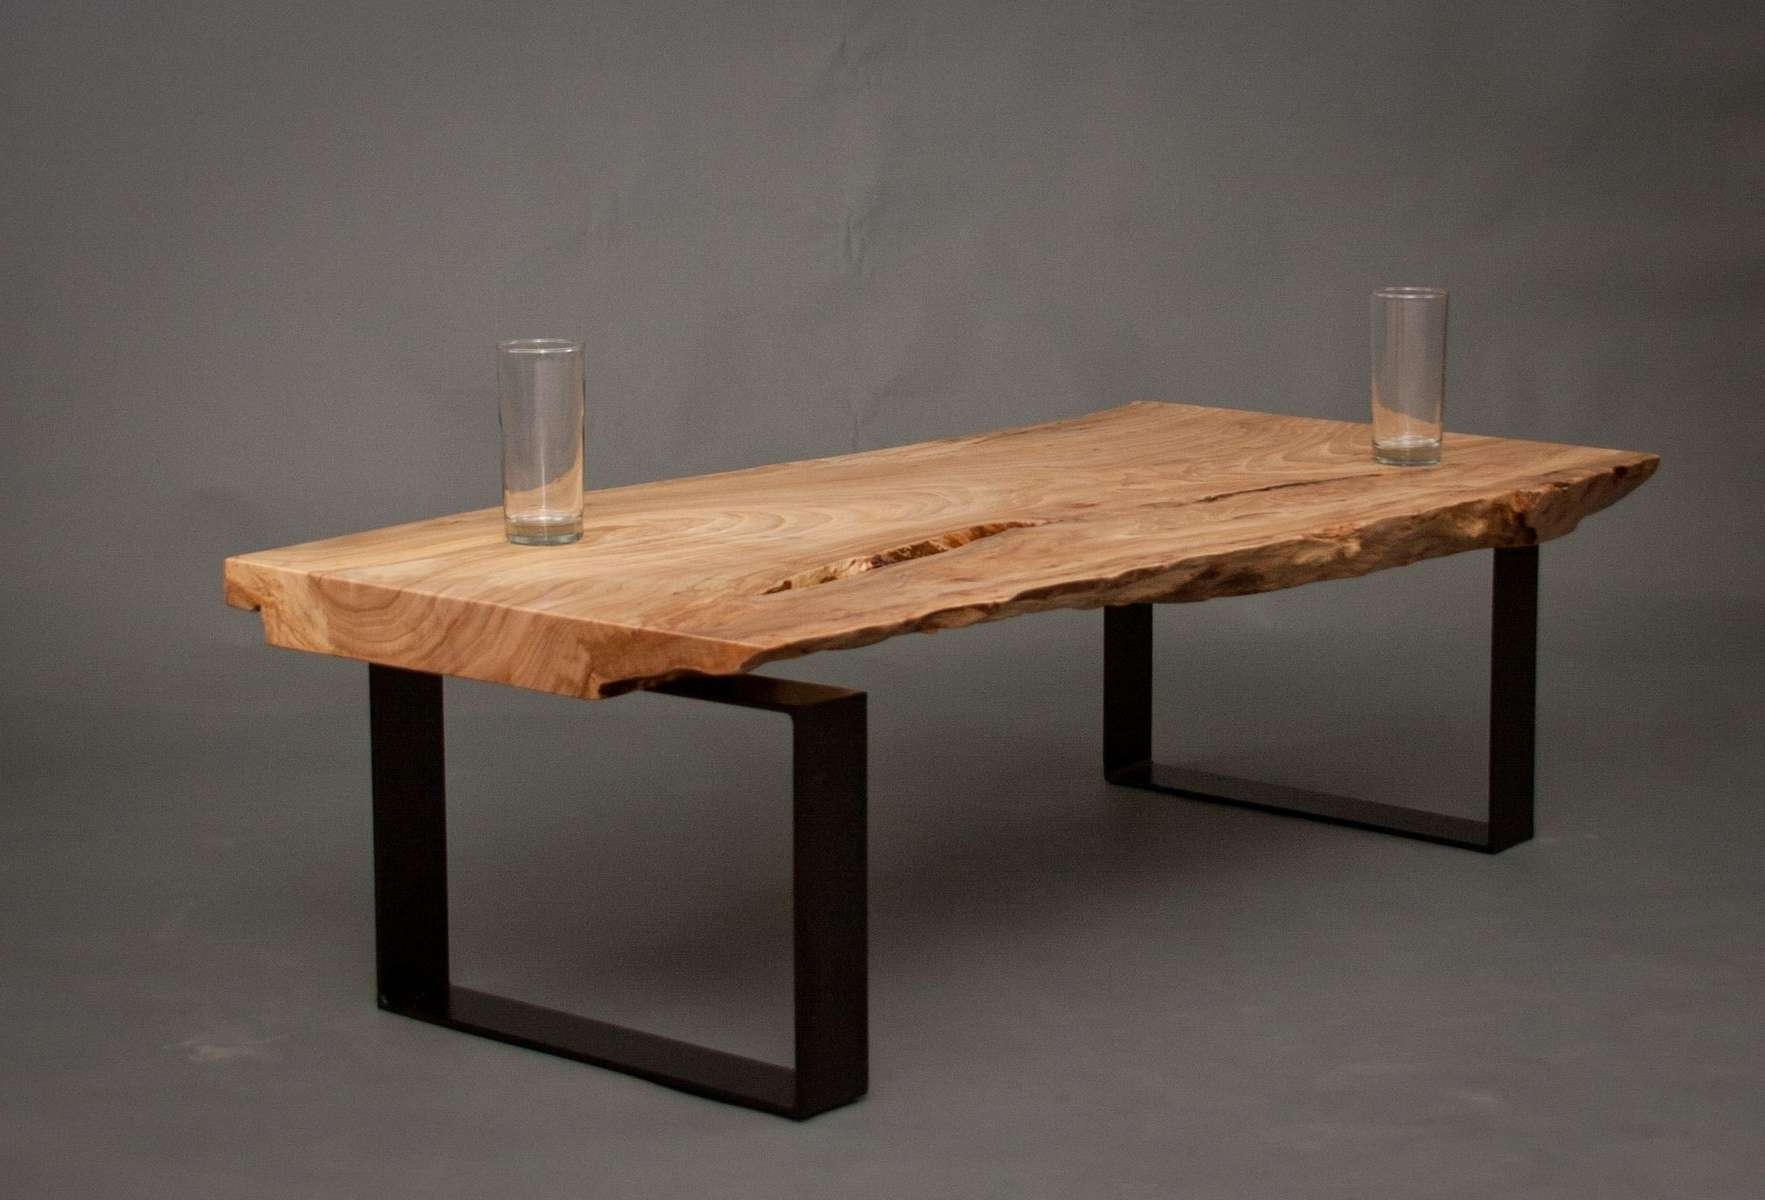 Handmade Wood Coffee Tables (View 10 of 20)